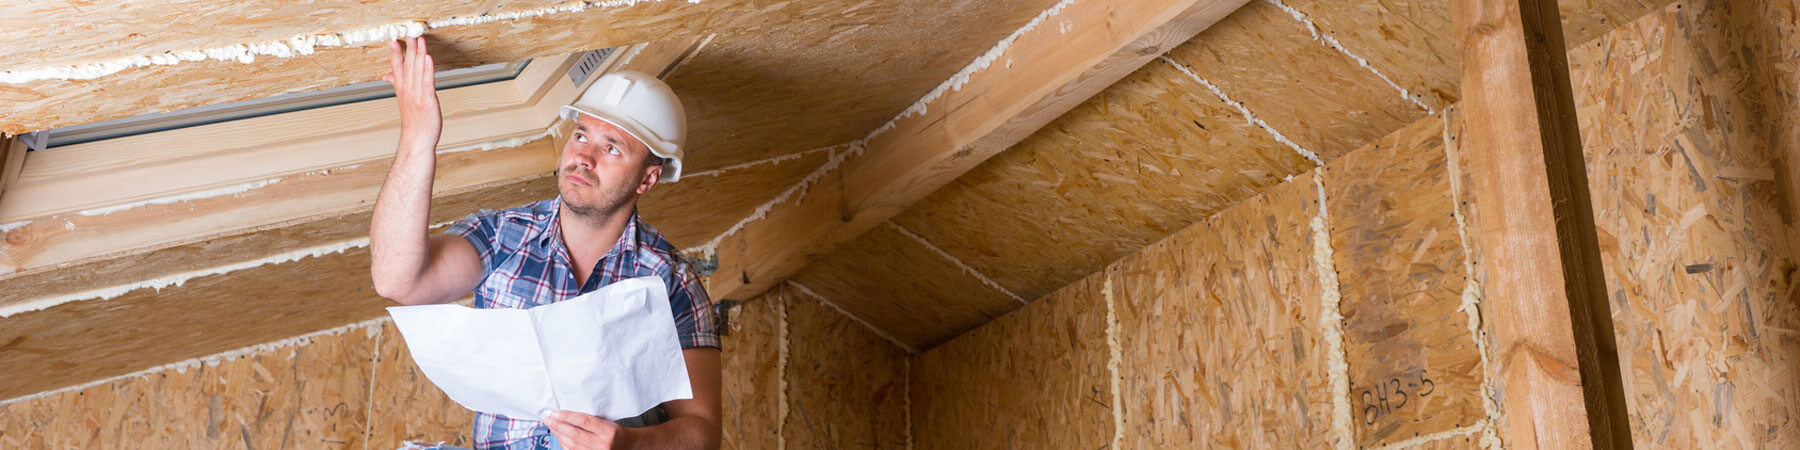 Home Attic Inspection